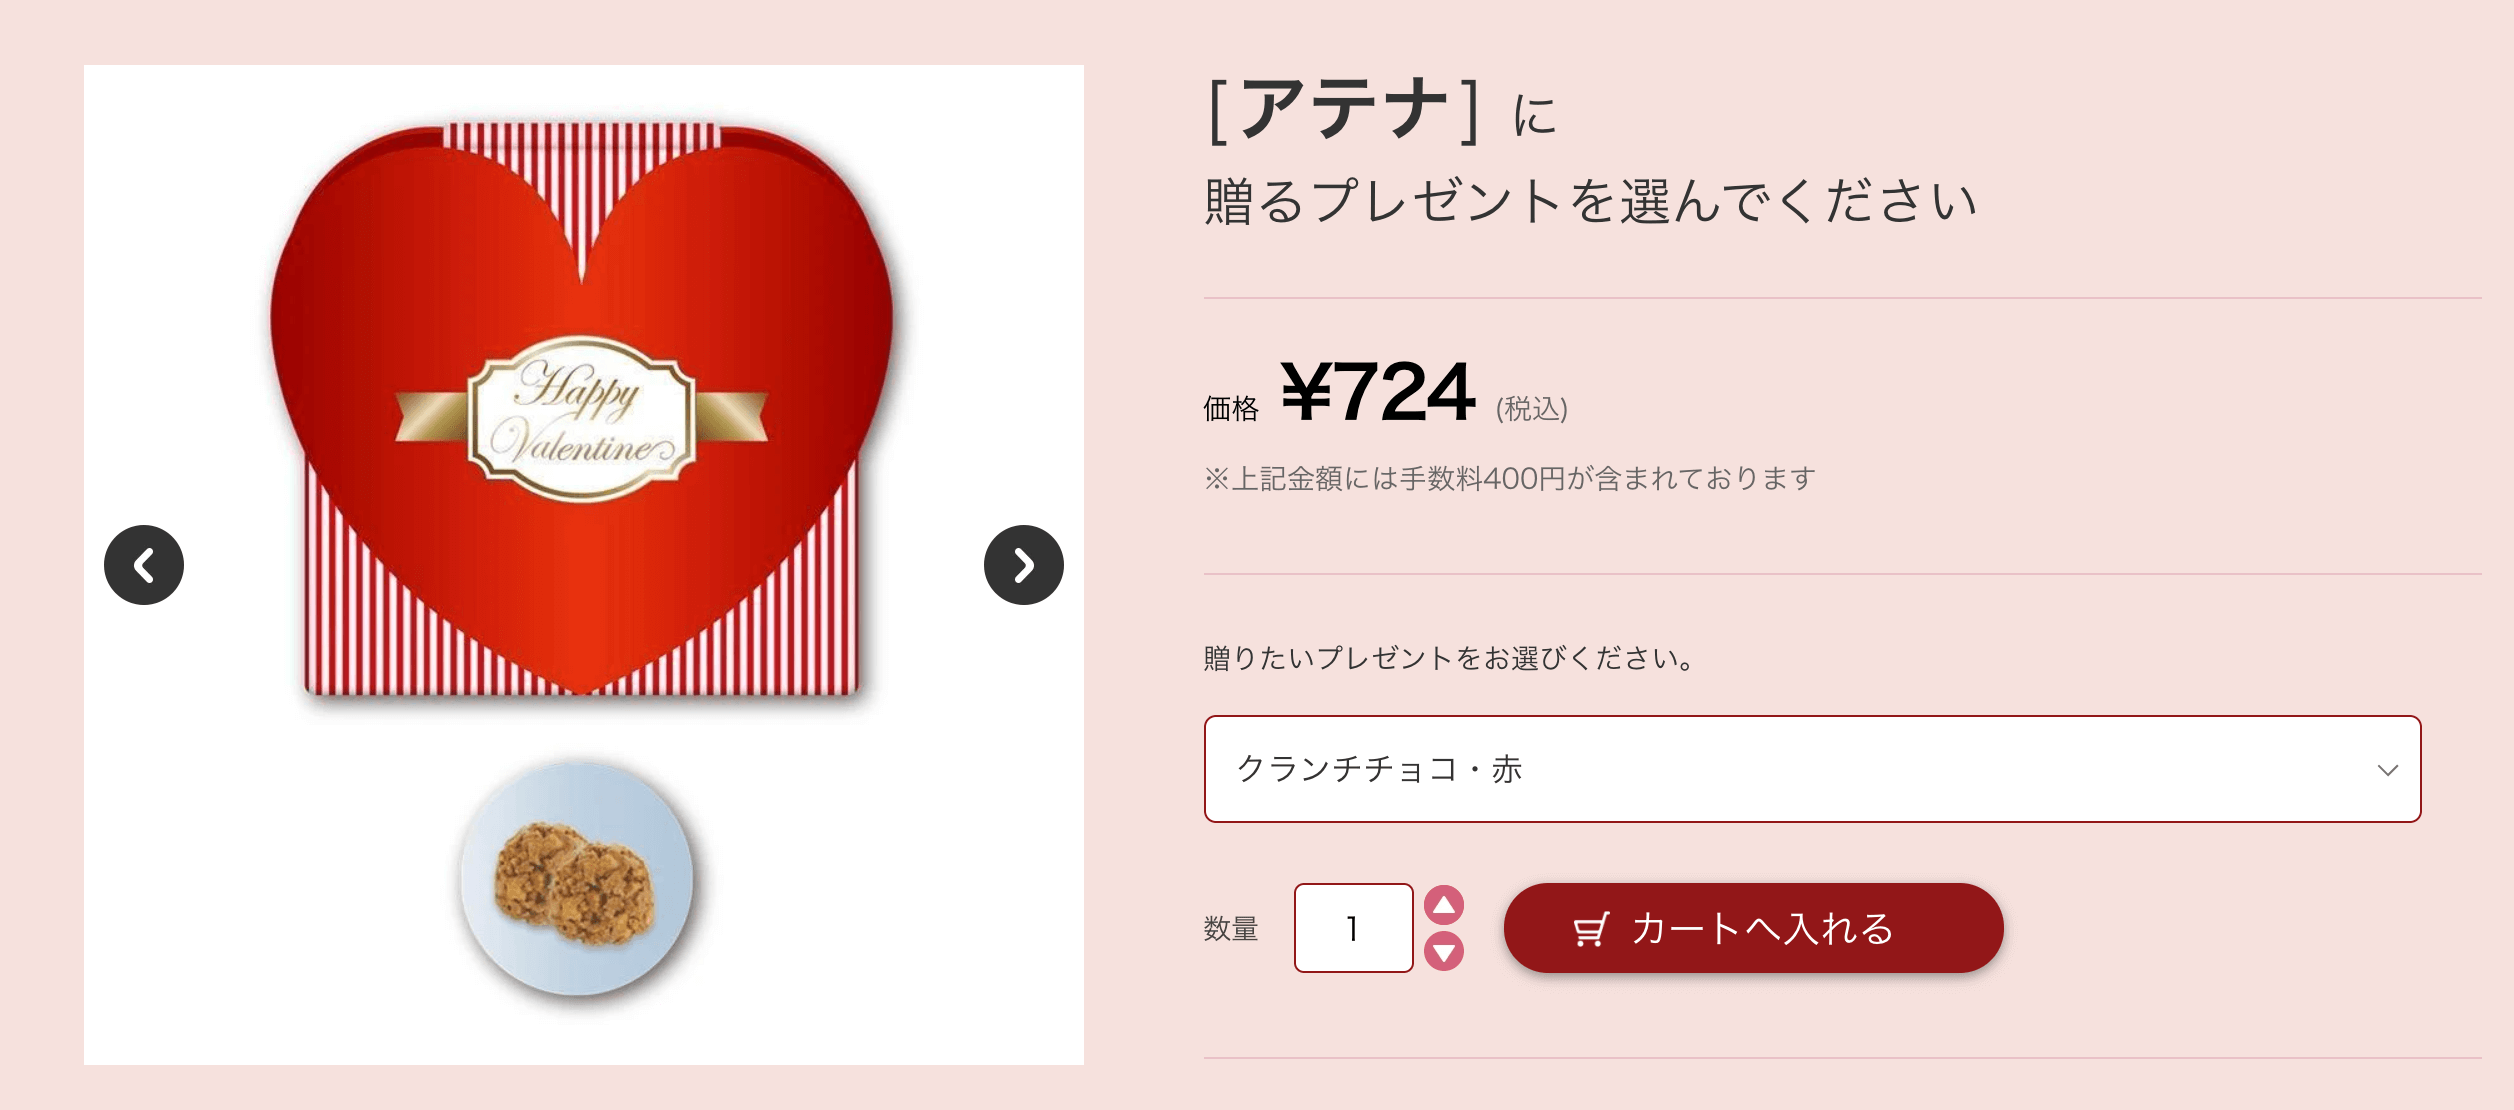 CyStores Valentine's Day Product Page